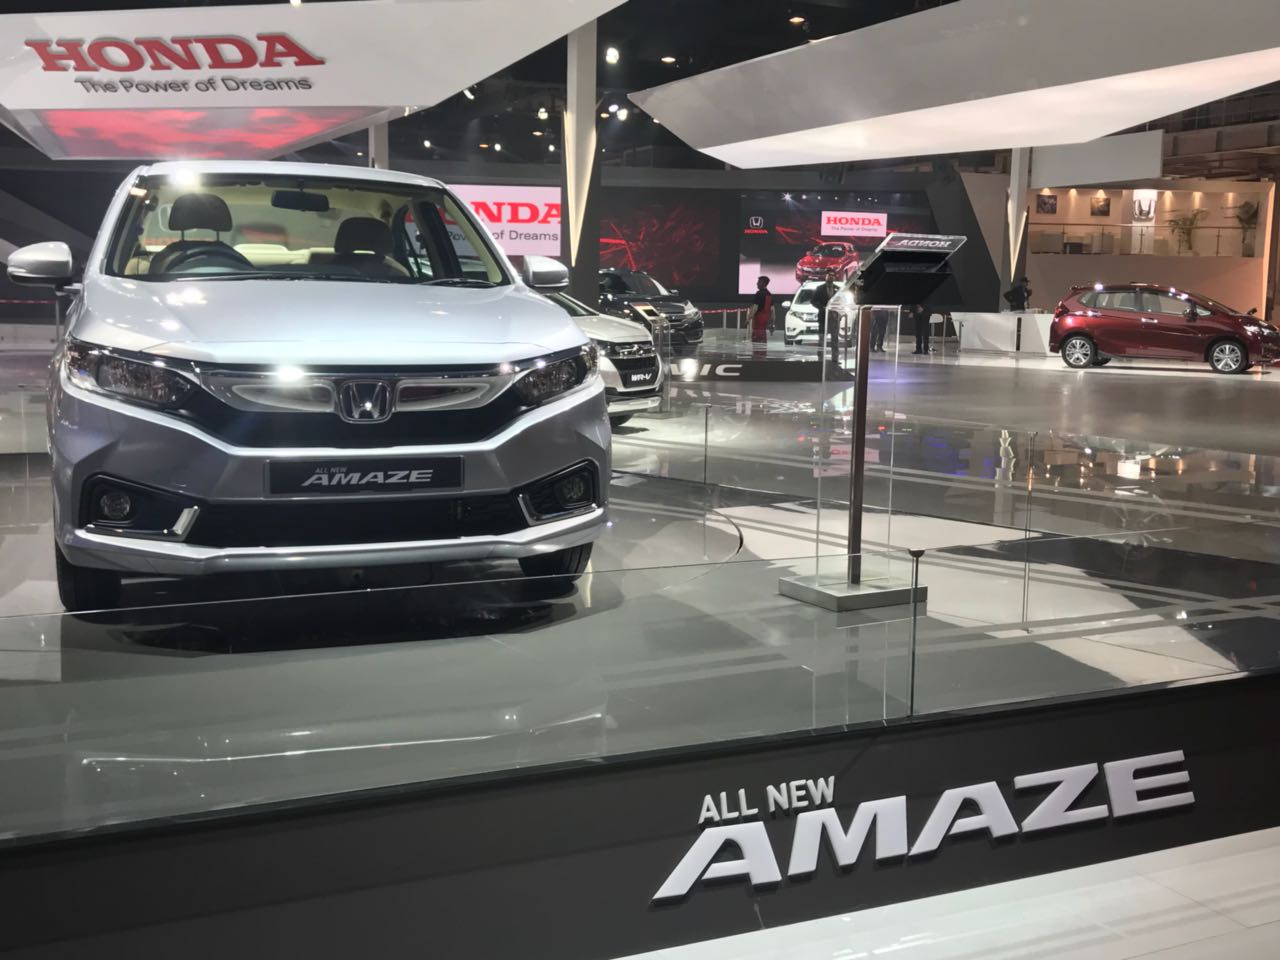 <p>The all-new Honda Amaze!</p>